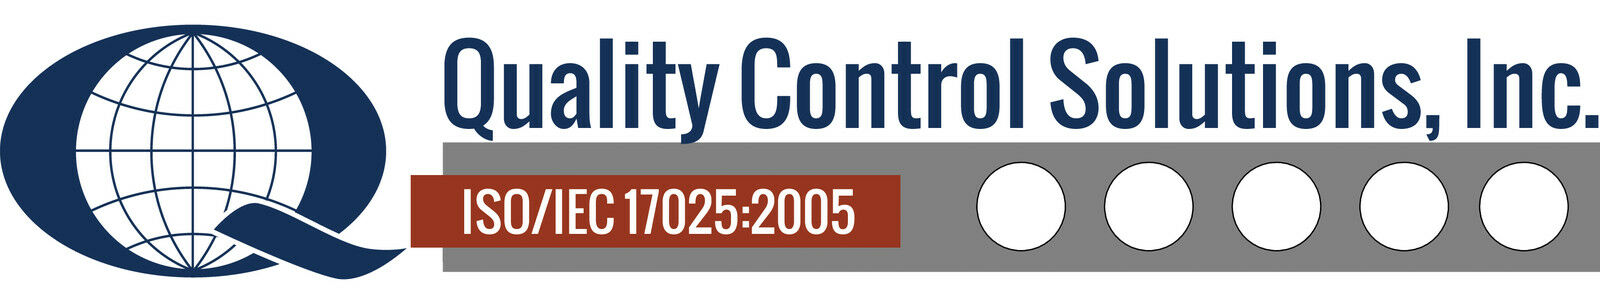 Quality Control Solutions Inc